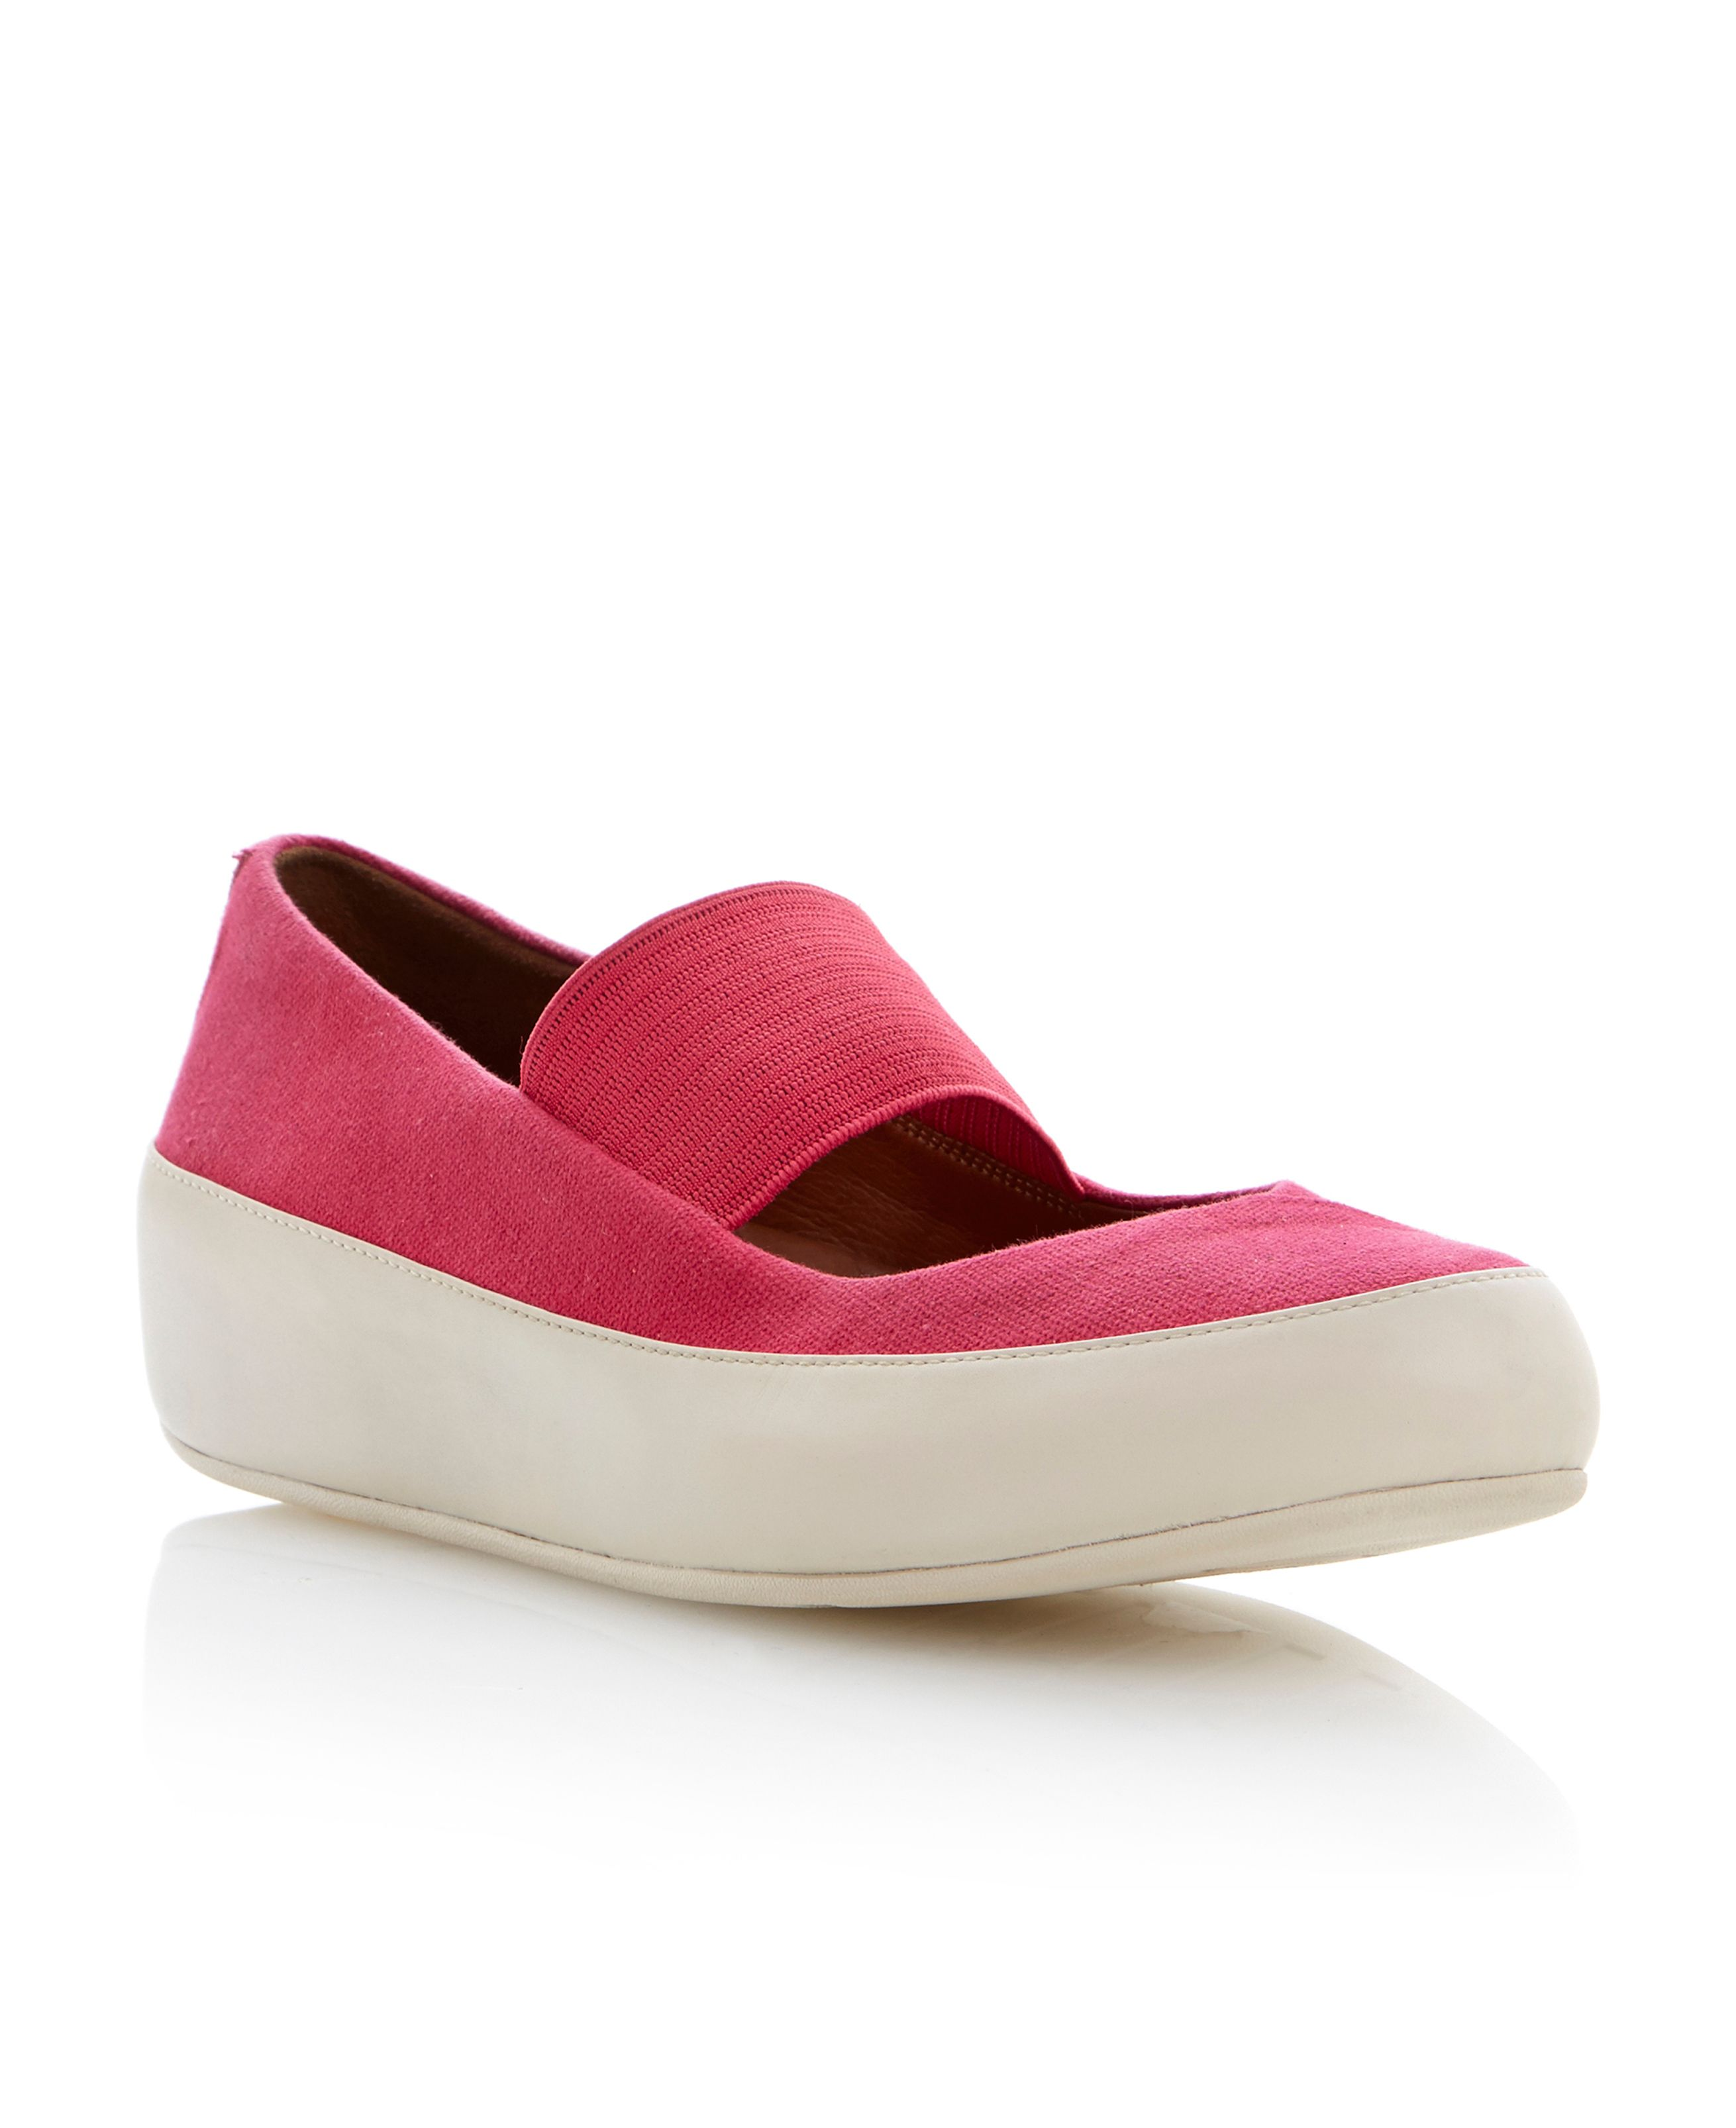 Due m-jane canvas round toe ballerina shoes